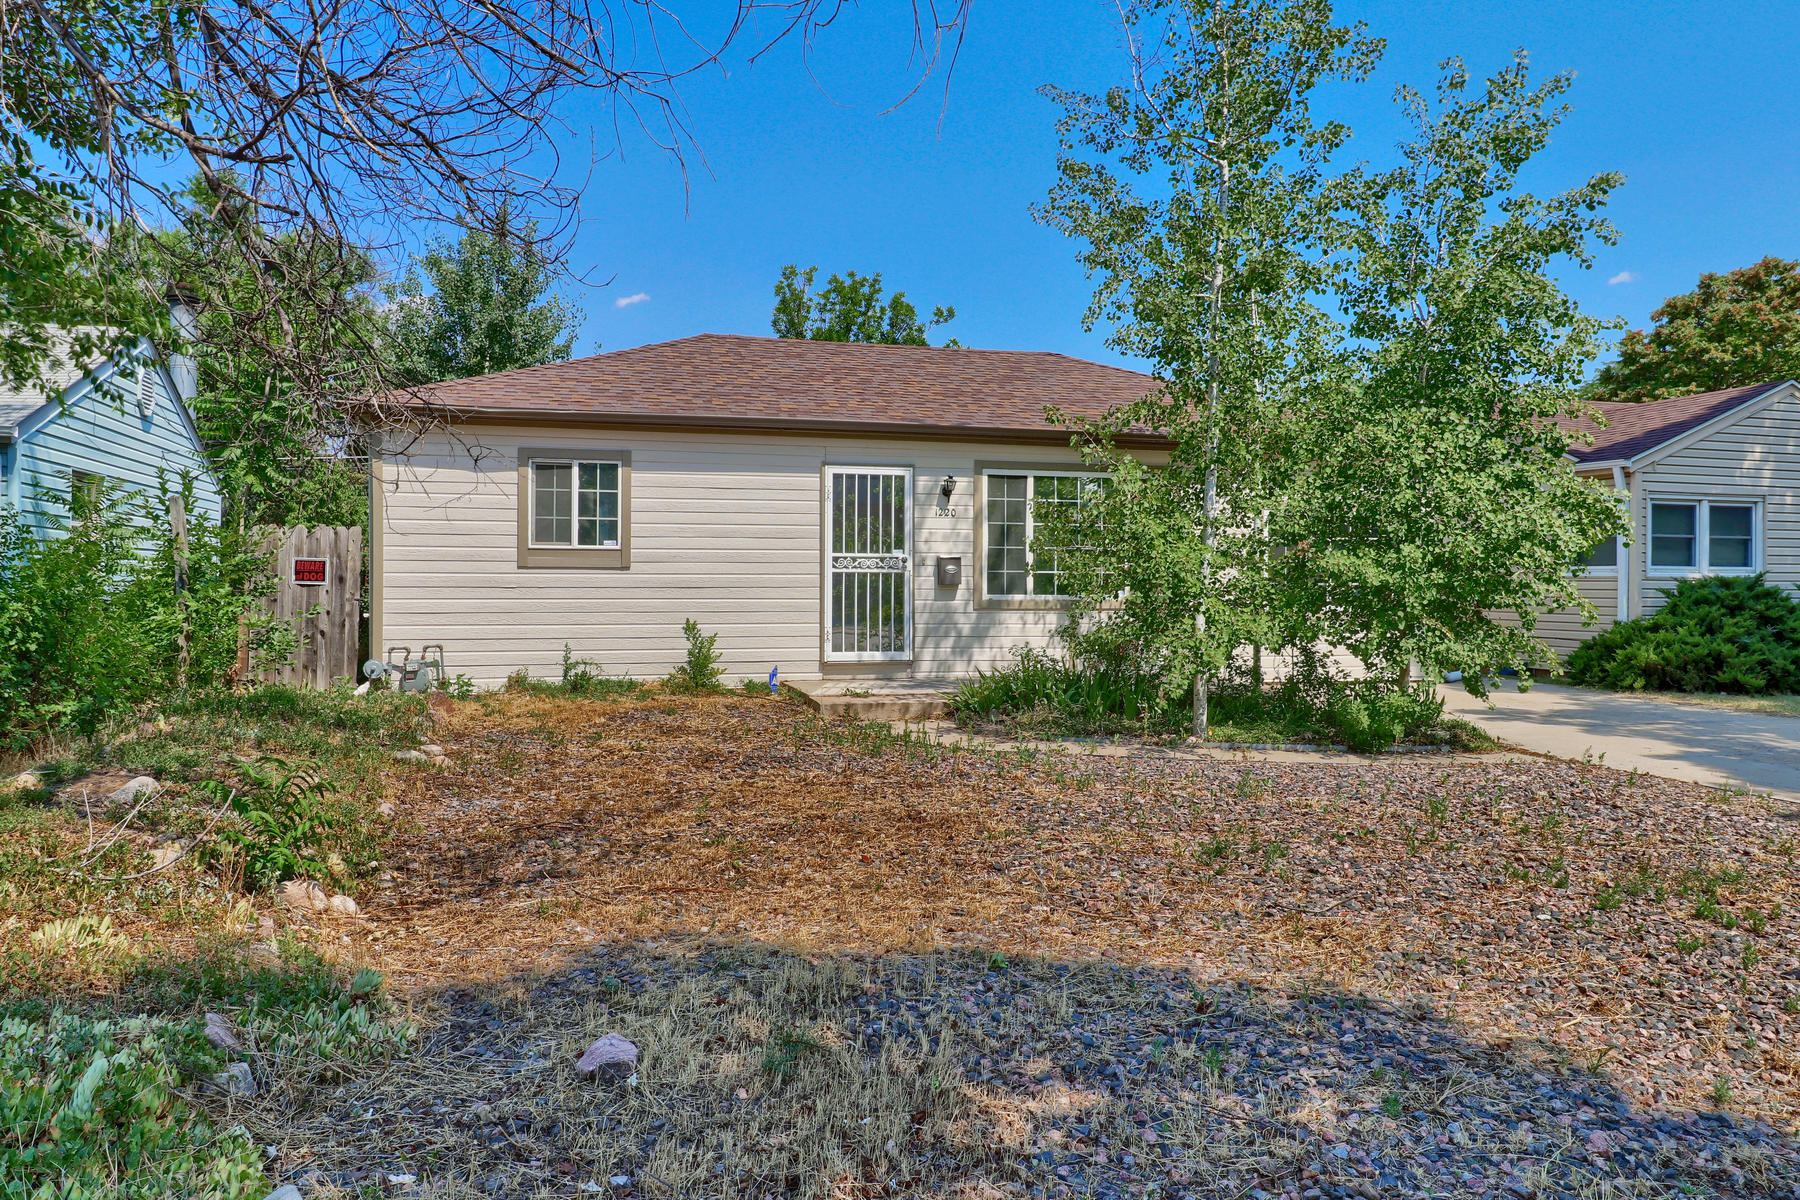 Single Family Home for Active at Clean And Bright Home Offers Three Bedrooms On One-Level Living 1220 Dayton Street Aurora, Colorado 80010 United States